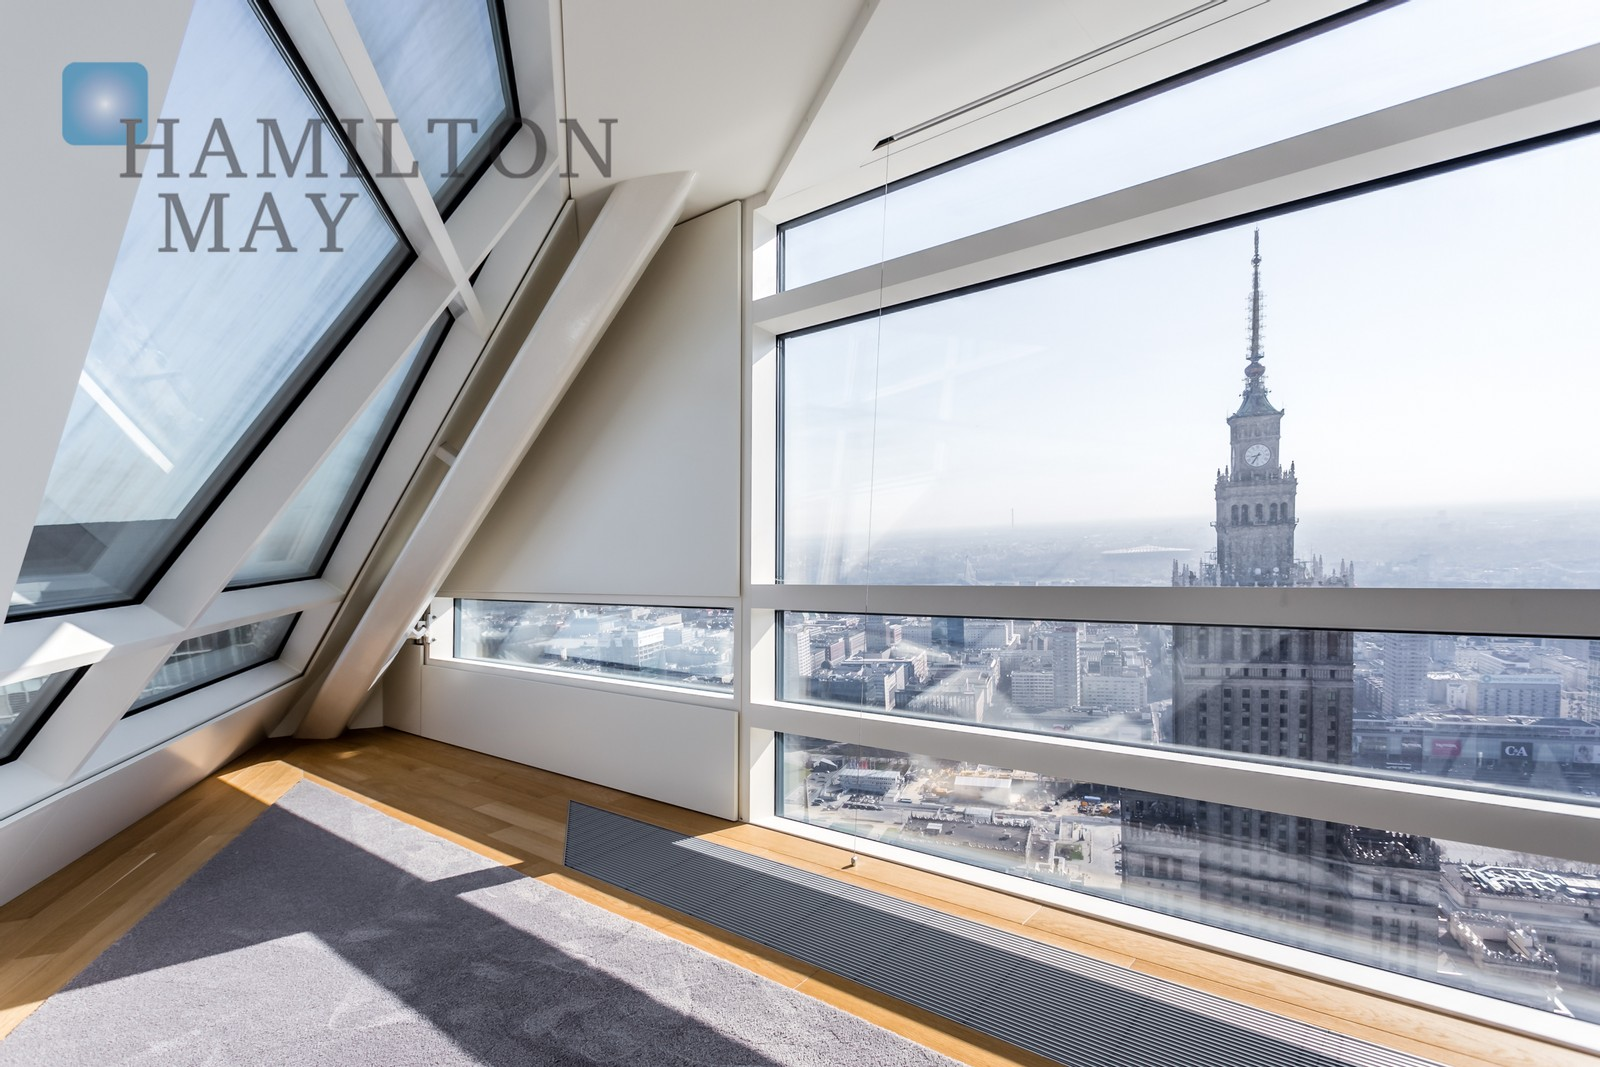 300m2 three-bedroom apartment with a breathtaking view of the Palace of Culture in the Złota 44 development Warsaw for sale